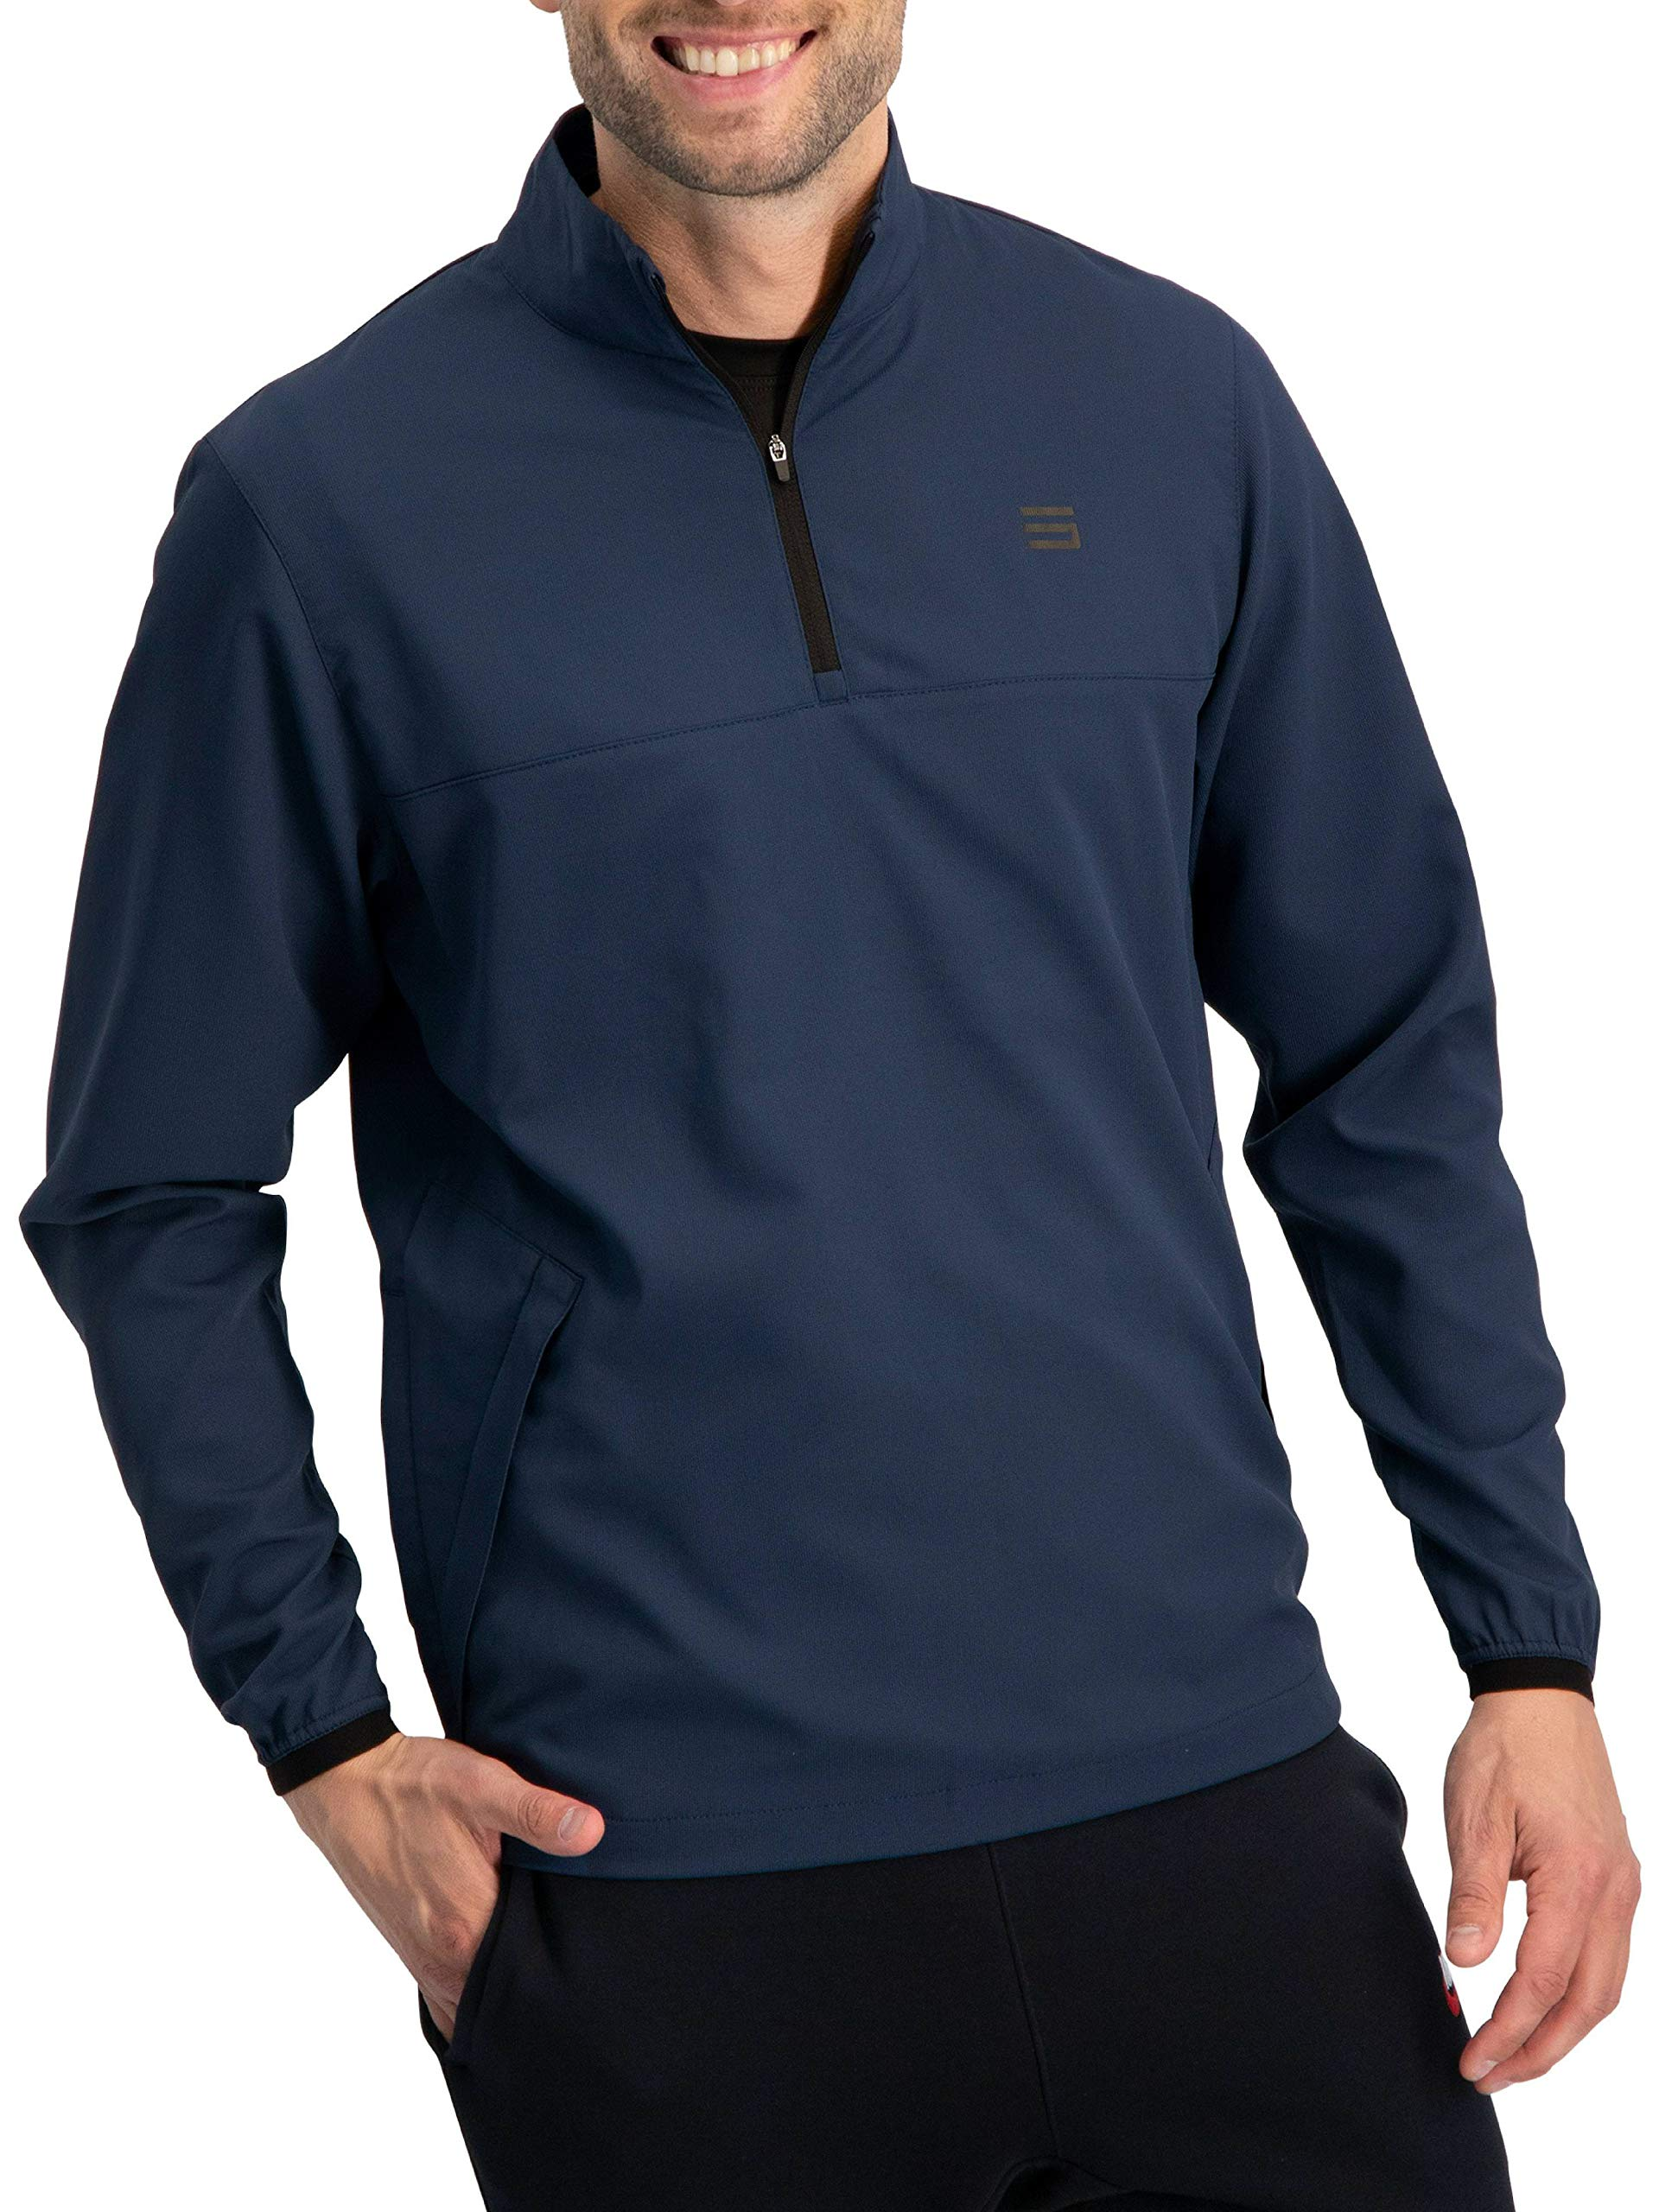 Mens Windbreaker Jackets - Half Zip Golf Pullover Wind Jacket - Vented, Dry Fit Deep Sea Blue by Three Sixty Six